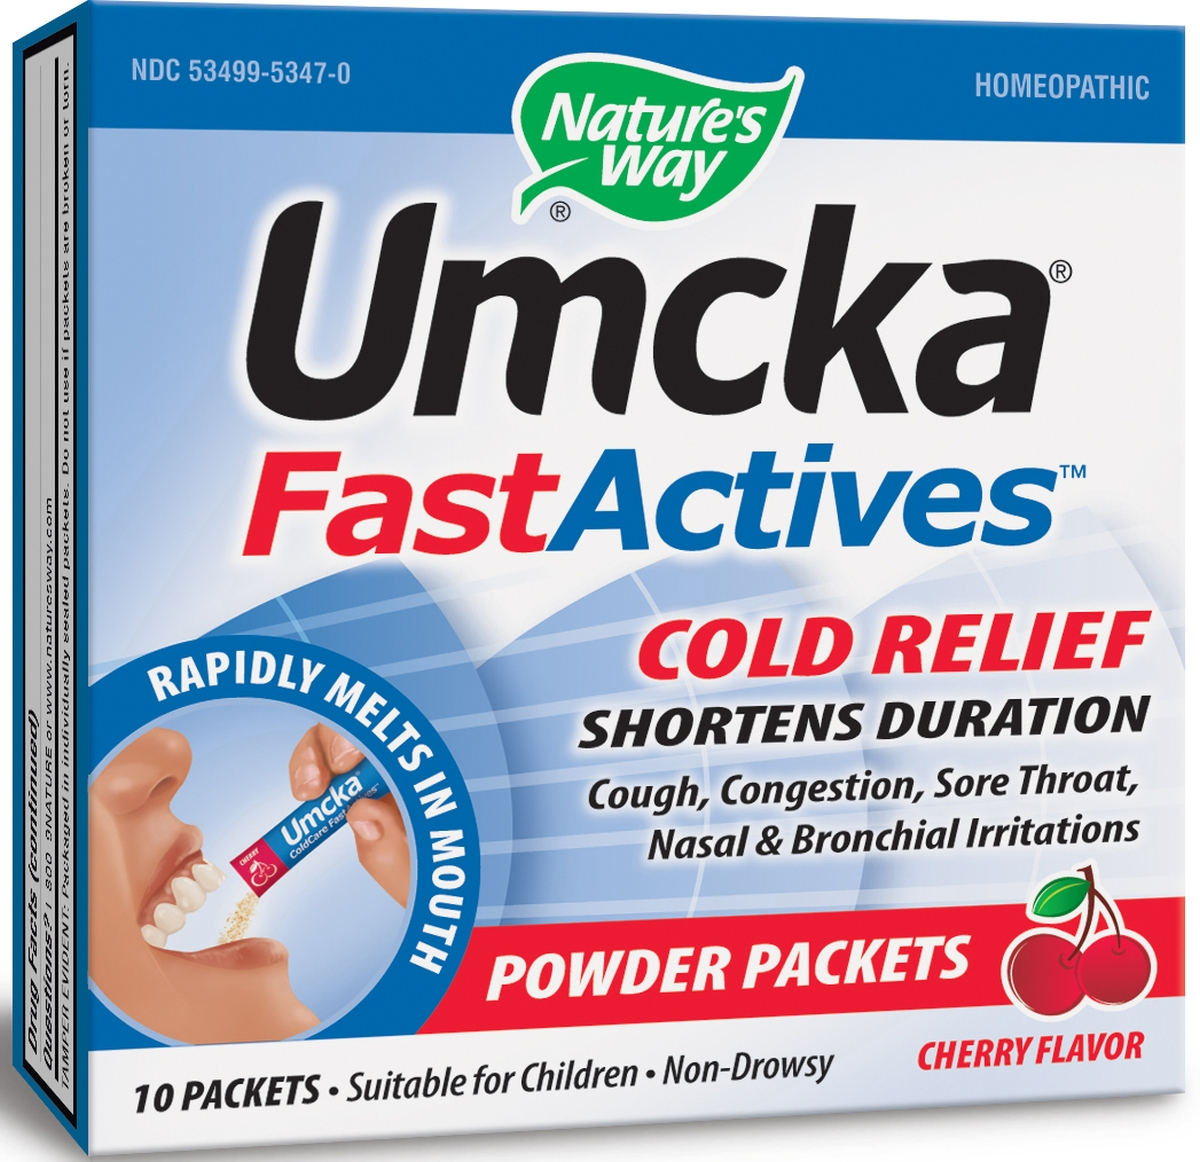 Umcka FastActives Cold Relief Cherry Flavor 10  Packets by Nature's Way